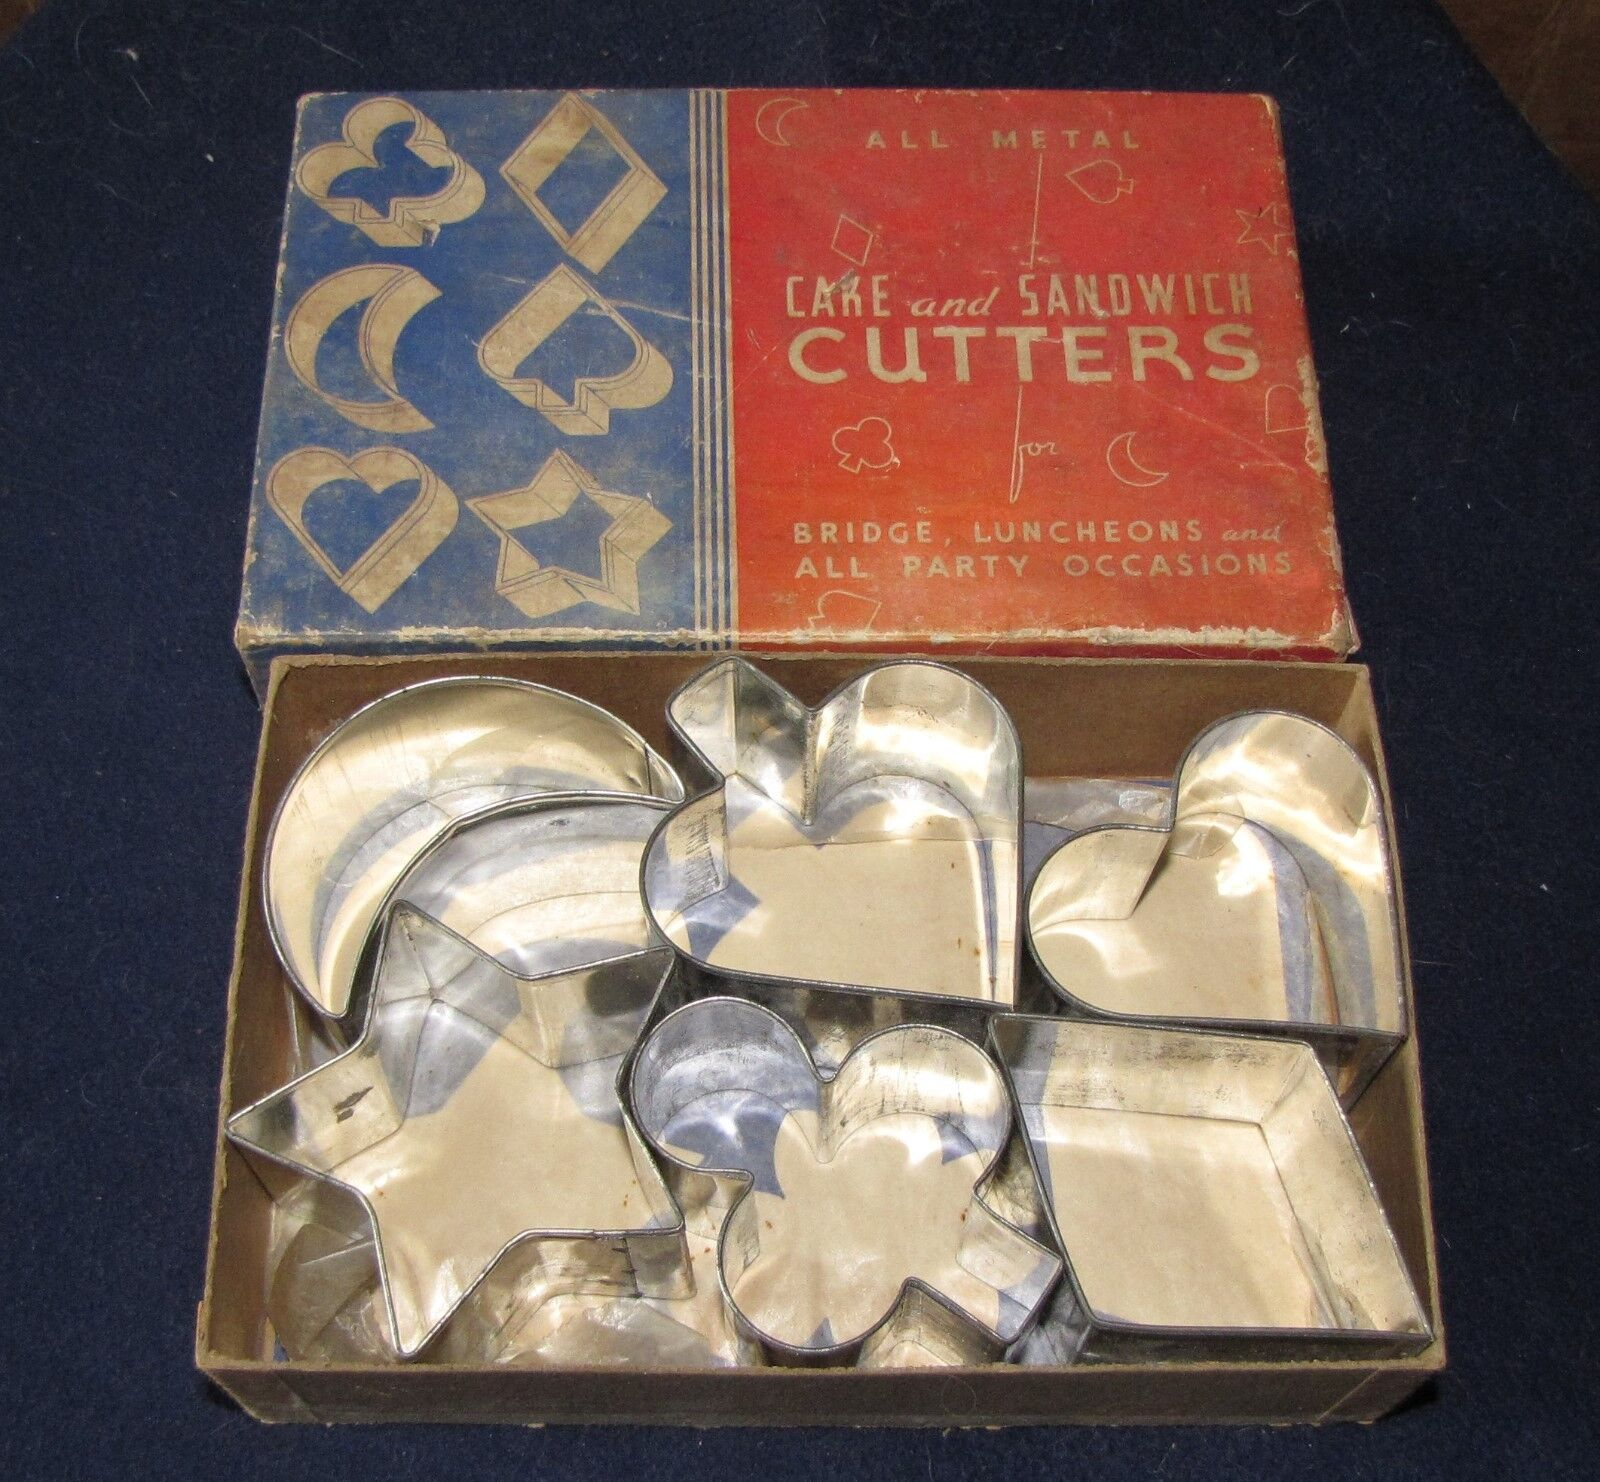 6 Metal Cake Sandwich Cutters Bridge Luncheons Party Occasions With Box - $19.99